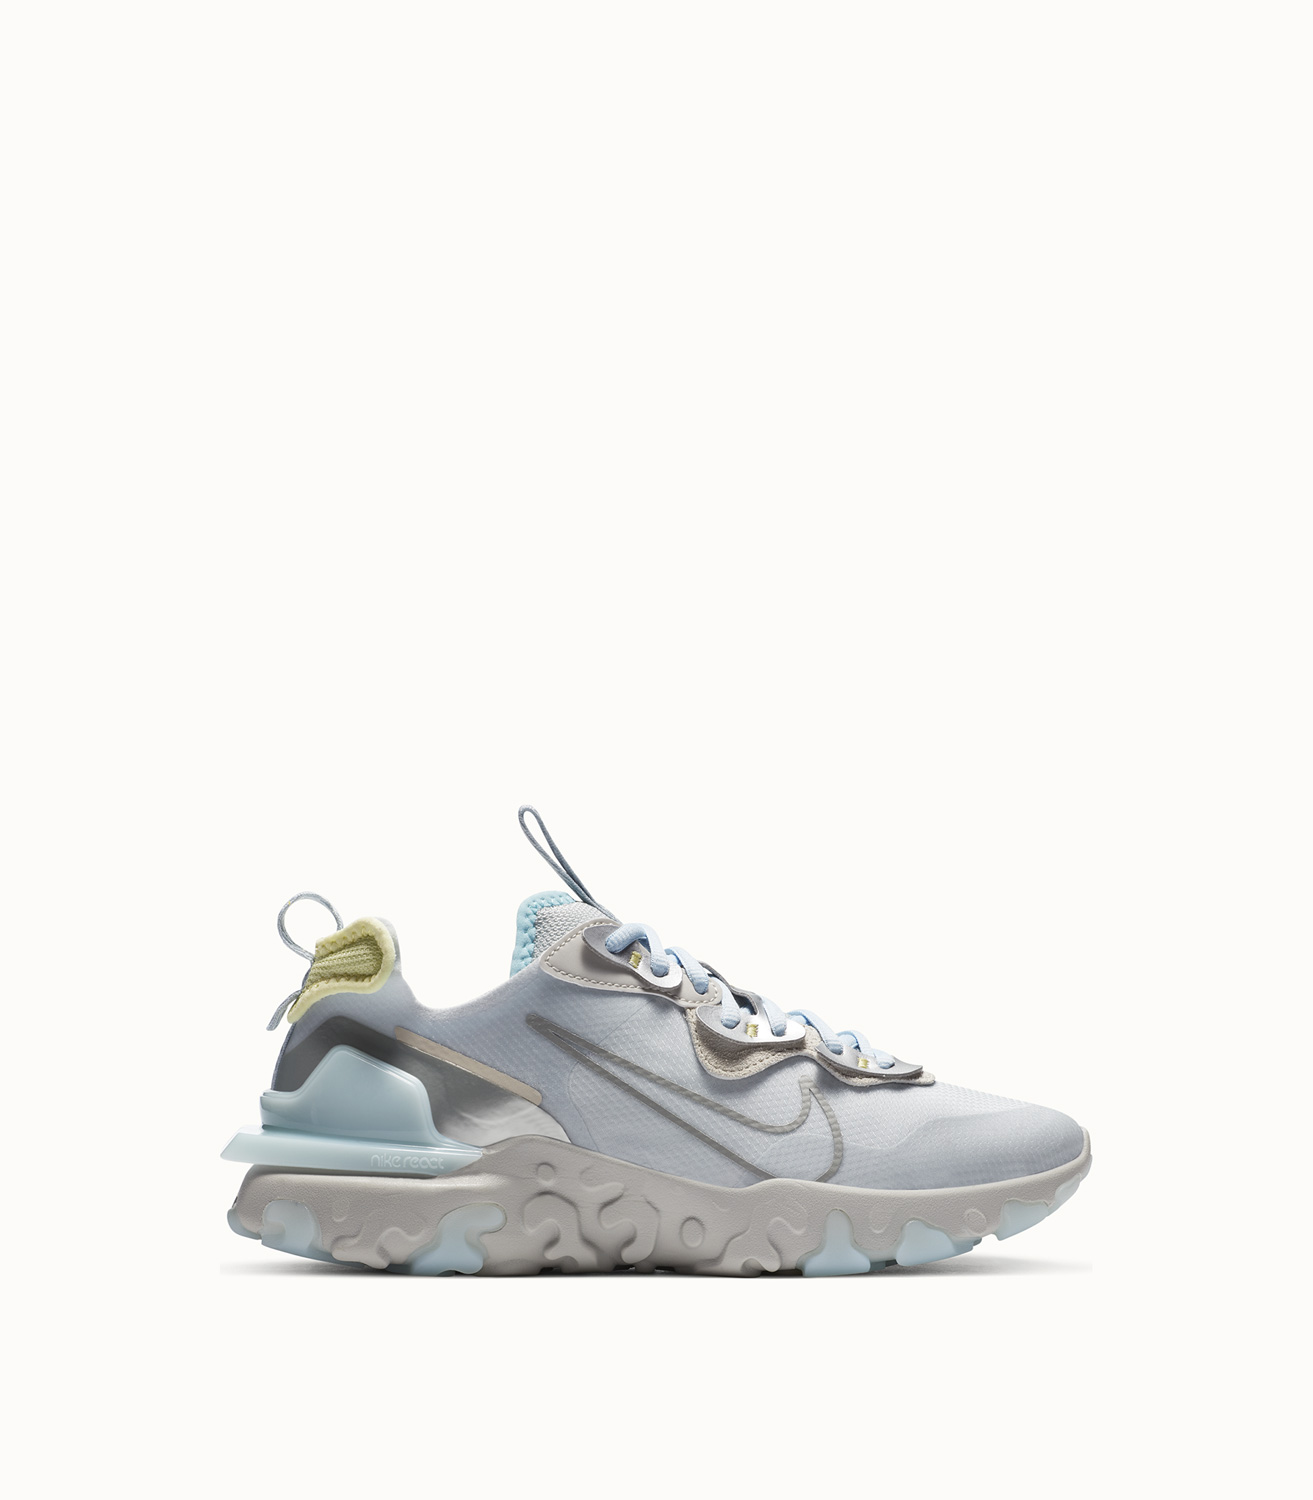 NIKE REACT VISION SNEAKERS COLOR LIGHT